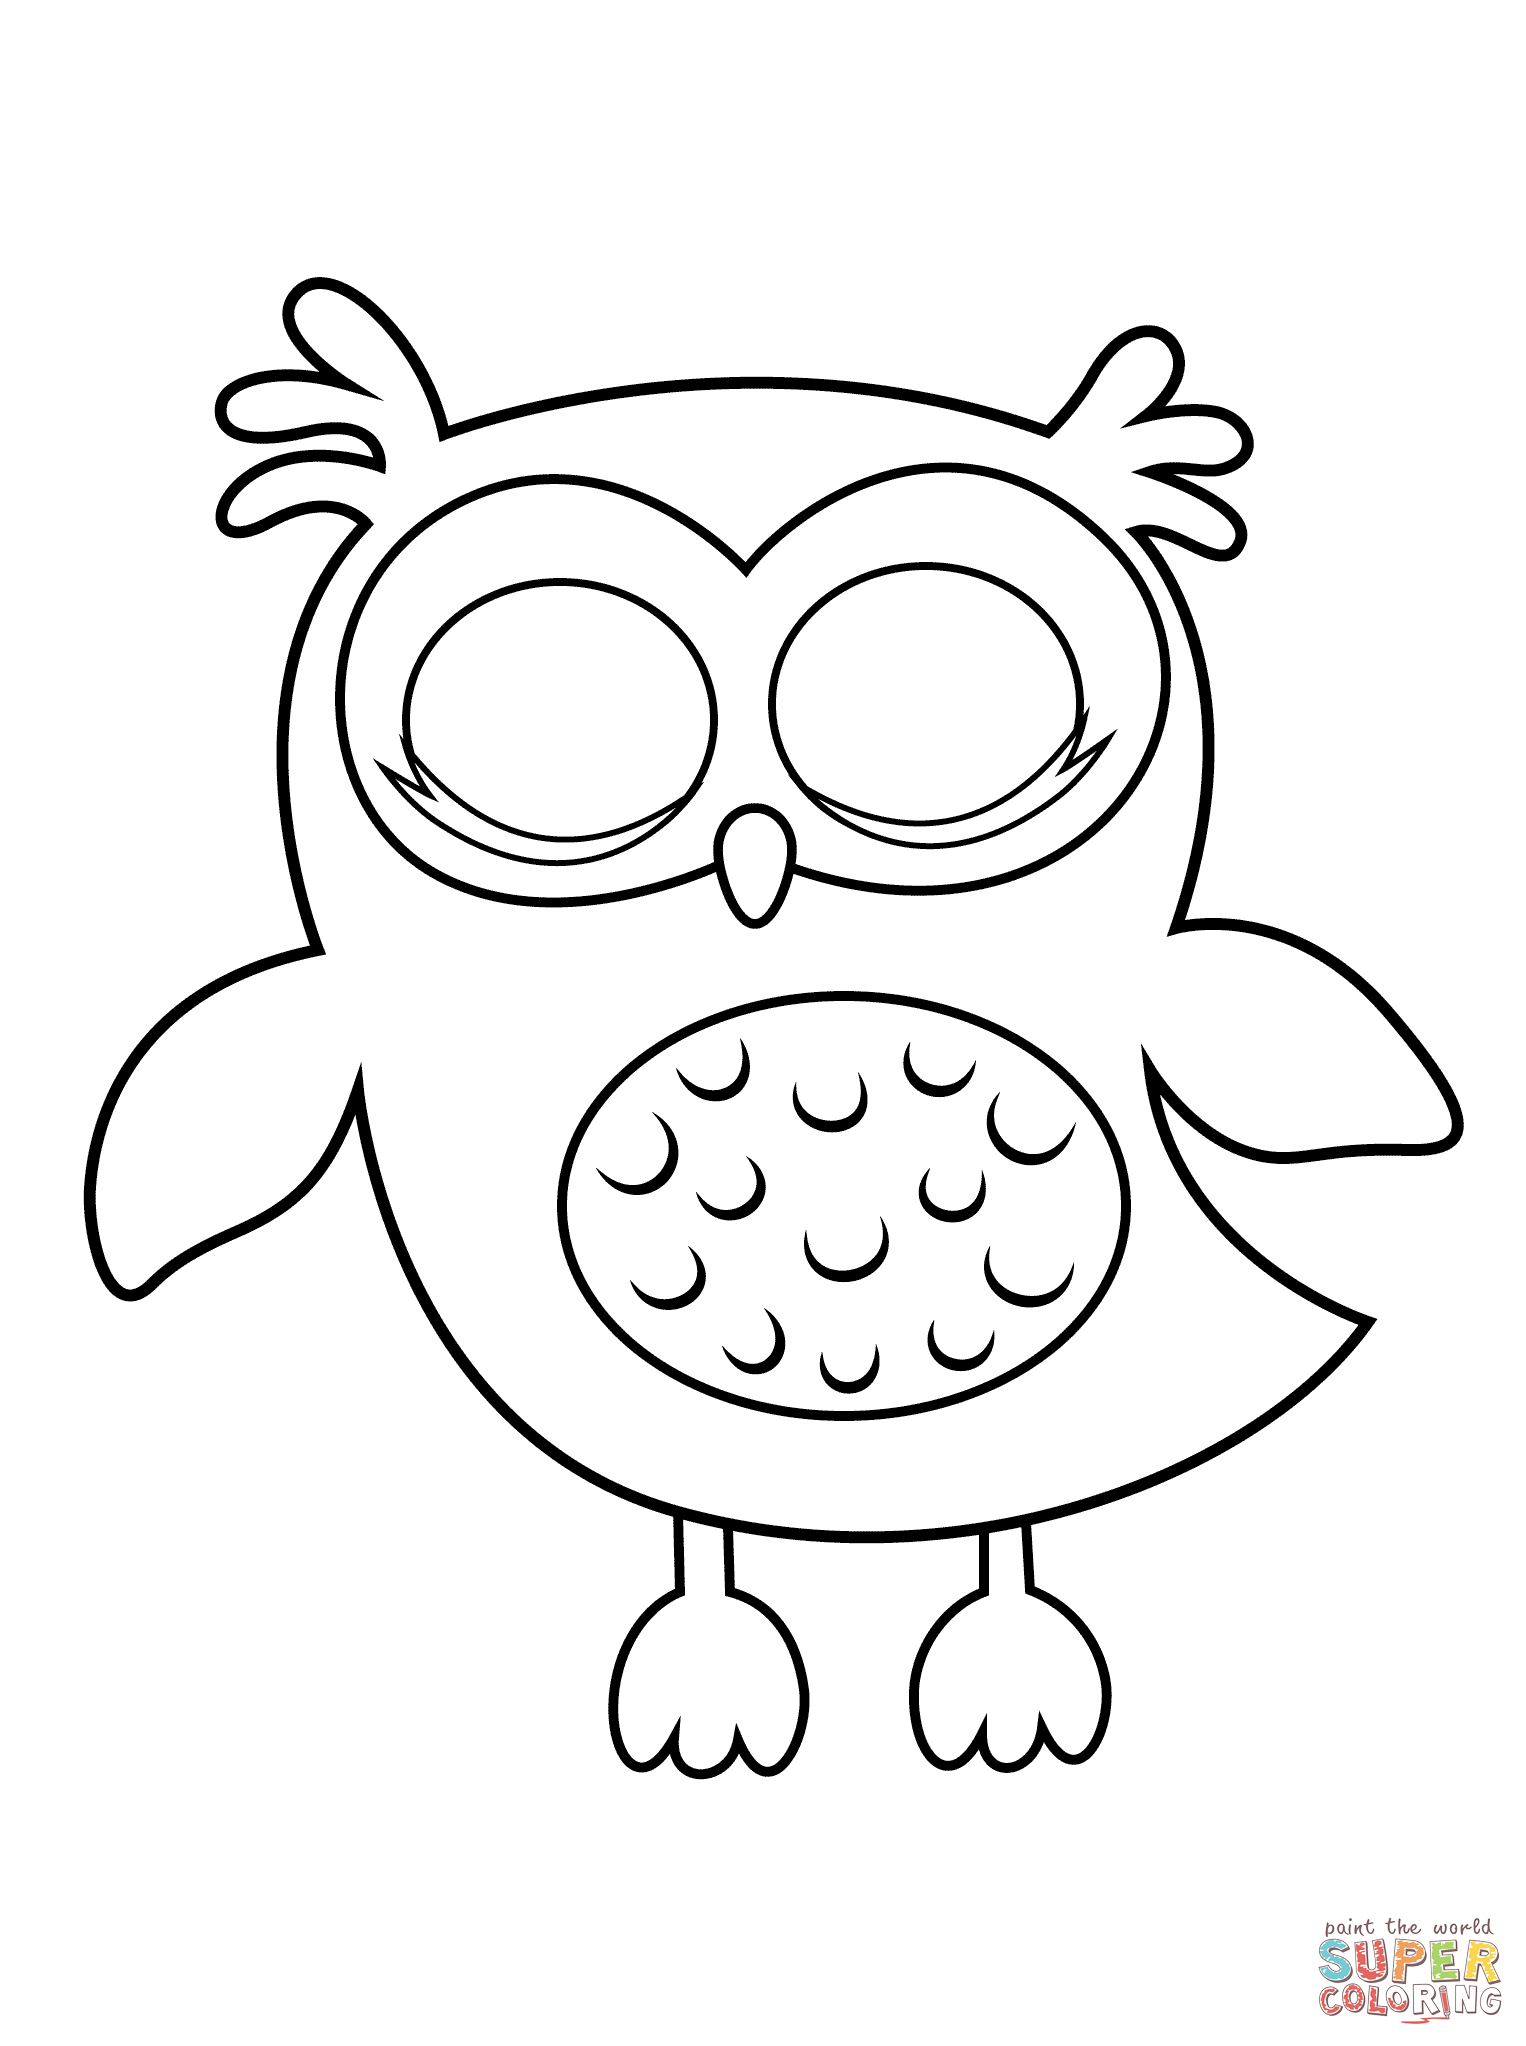 owls coloring pages preschool | Owl Coloring Pages Preschool - Coloring Home